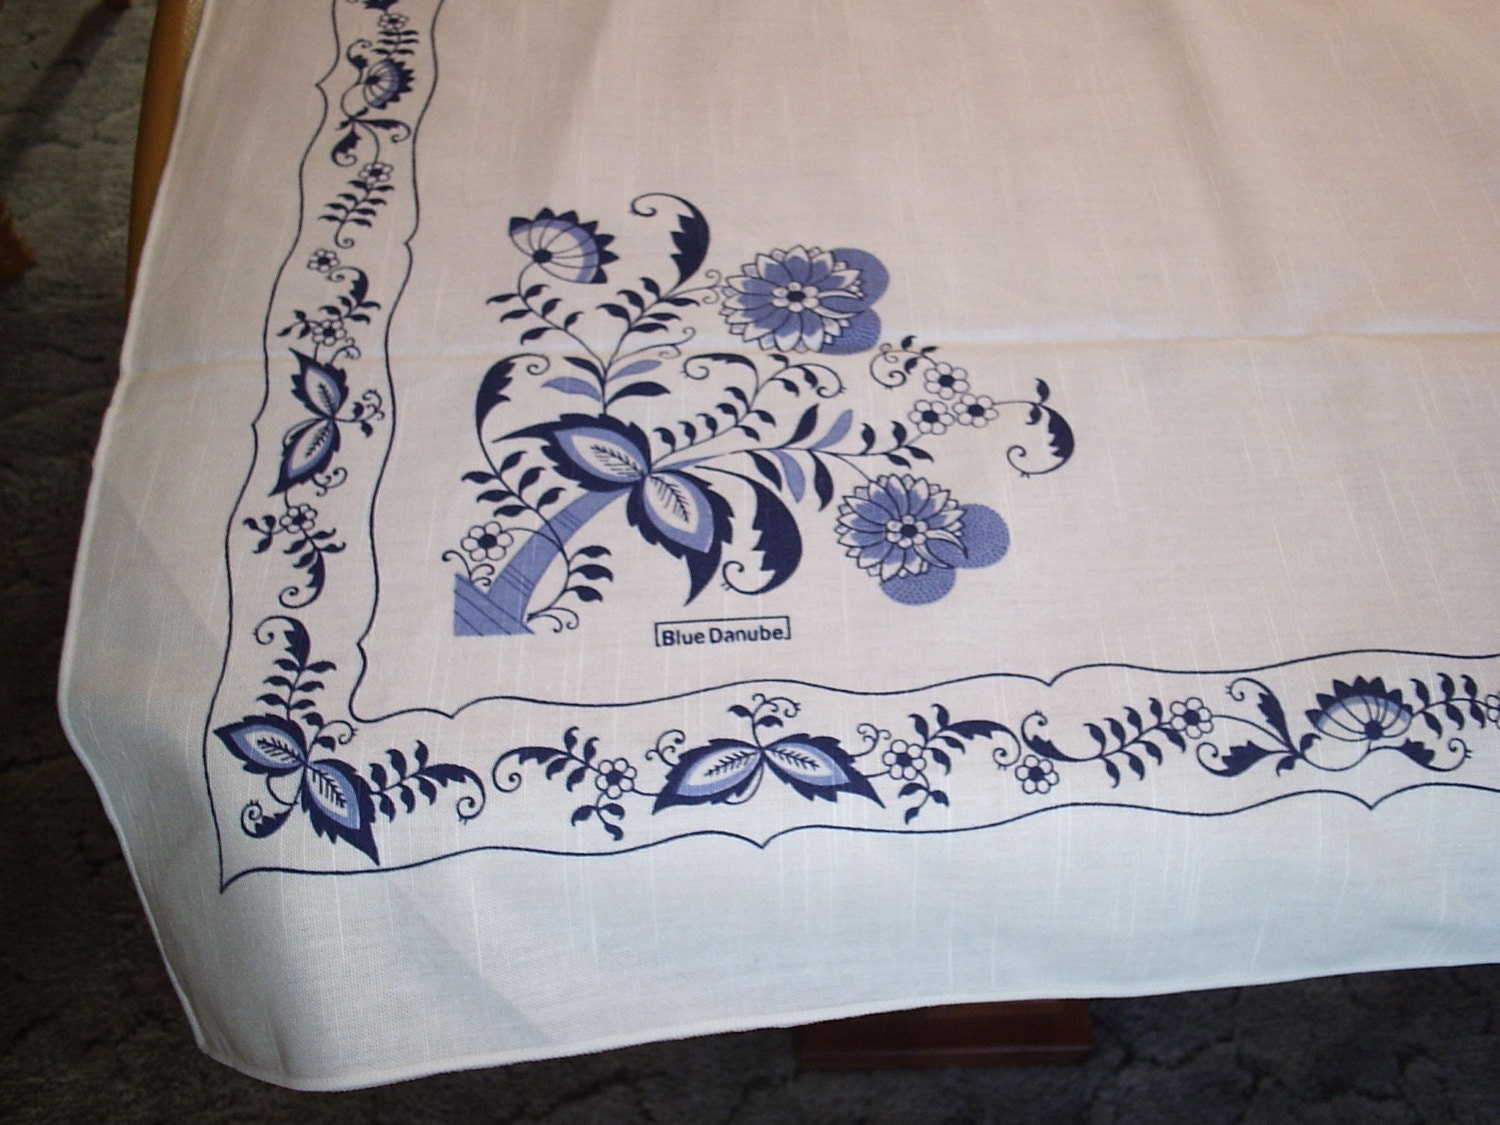 Blue Danube Or Blue Onion Tablecloth 58 X 86 Inches Linen Look